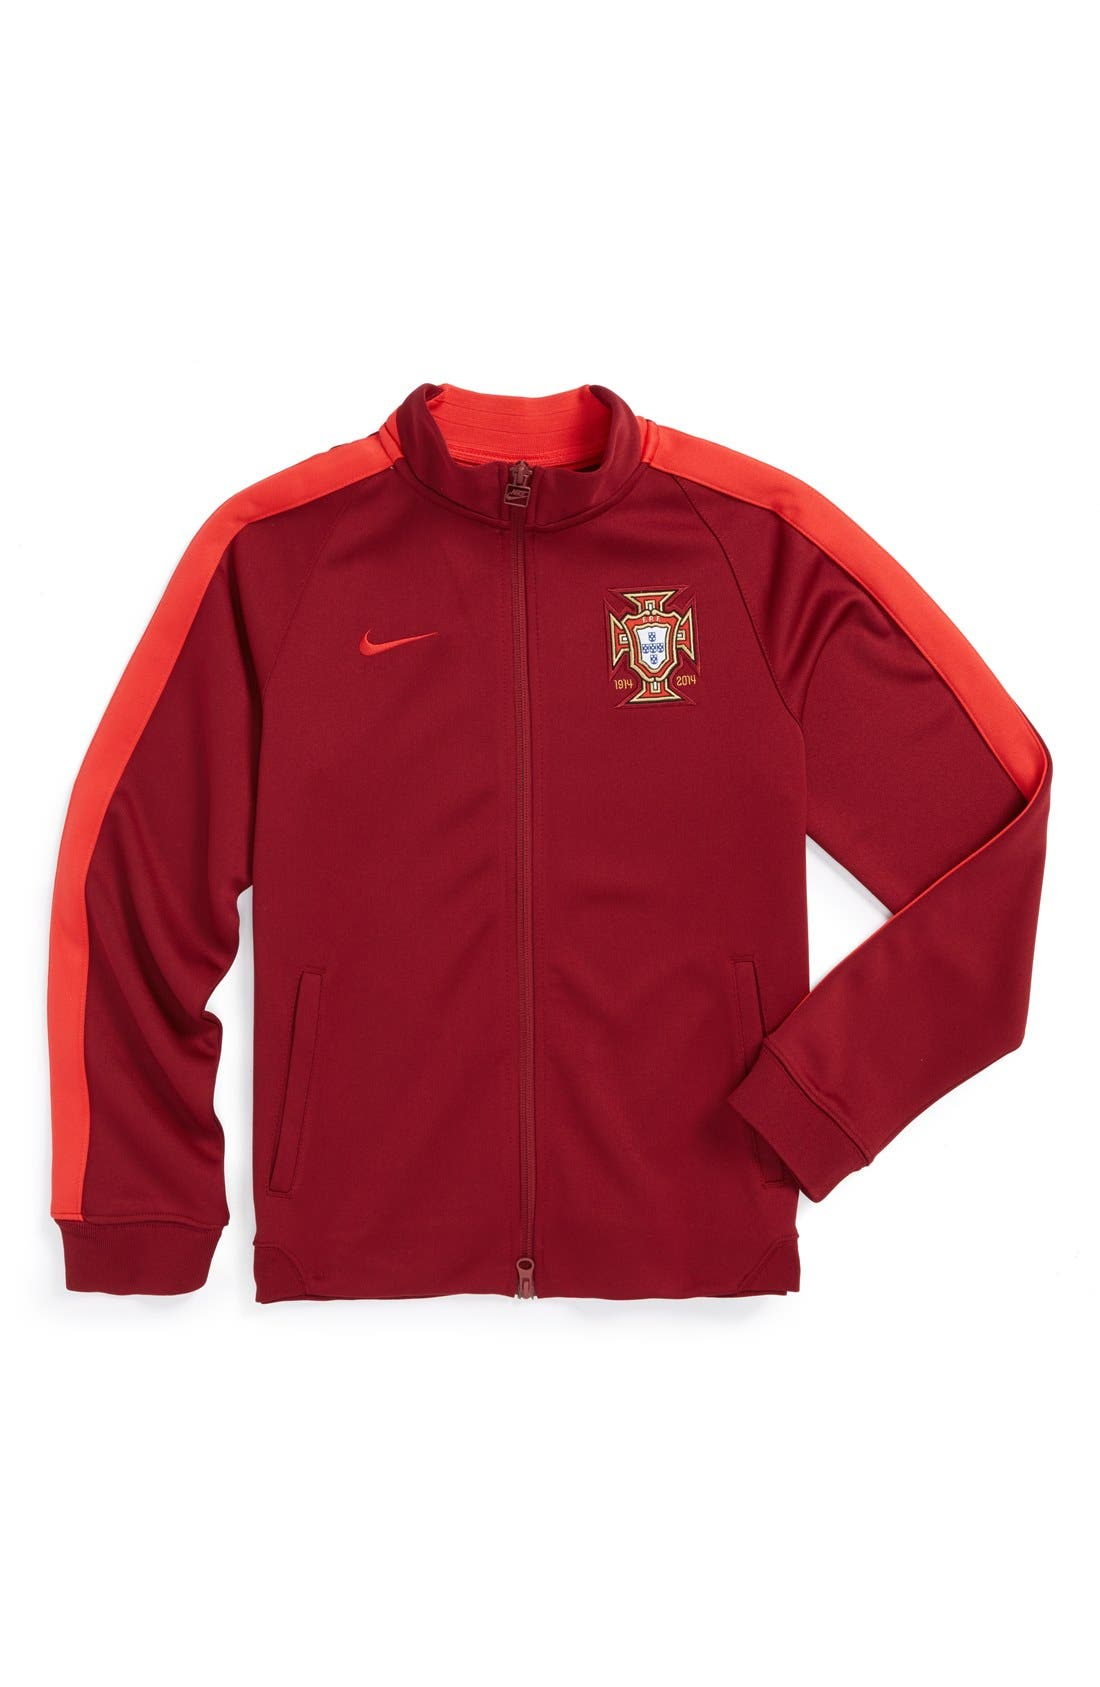 Main Image - Nike 'Portugal - N98 World Soccer Authentic' Track Jacket (Big Boys)